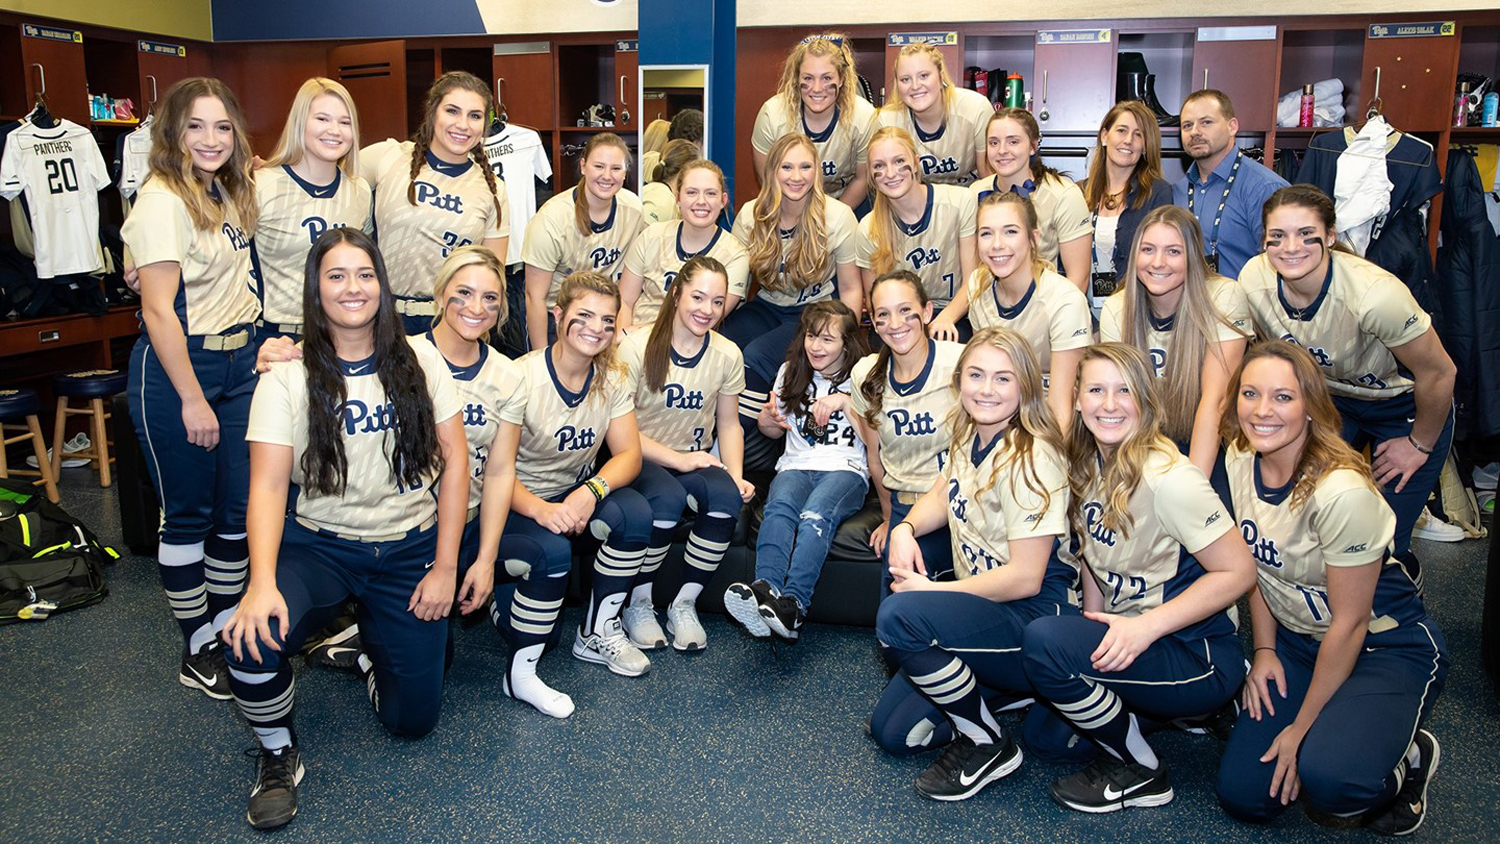 The Pitt softball team signed 16-year-old Team IMPACT recruit Rylee DiTullio last Monday. Team IMPACT is a national nonprofit organization that connects children with serious or chronic illnesses with college athletic teams.